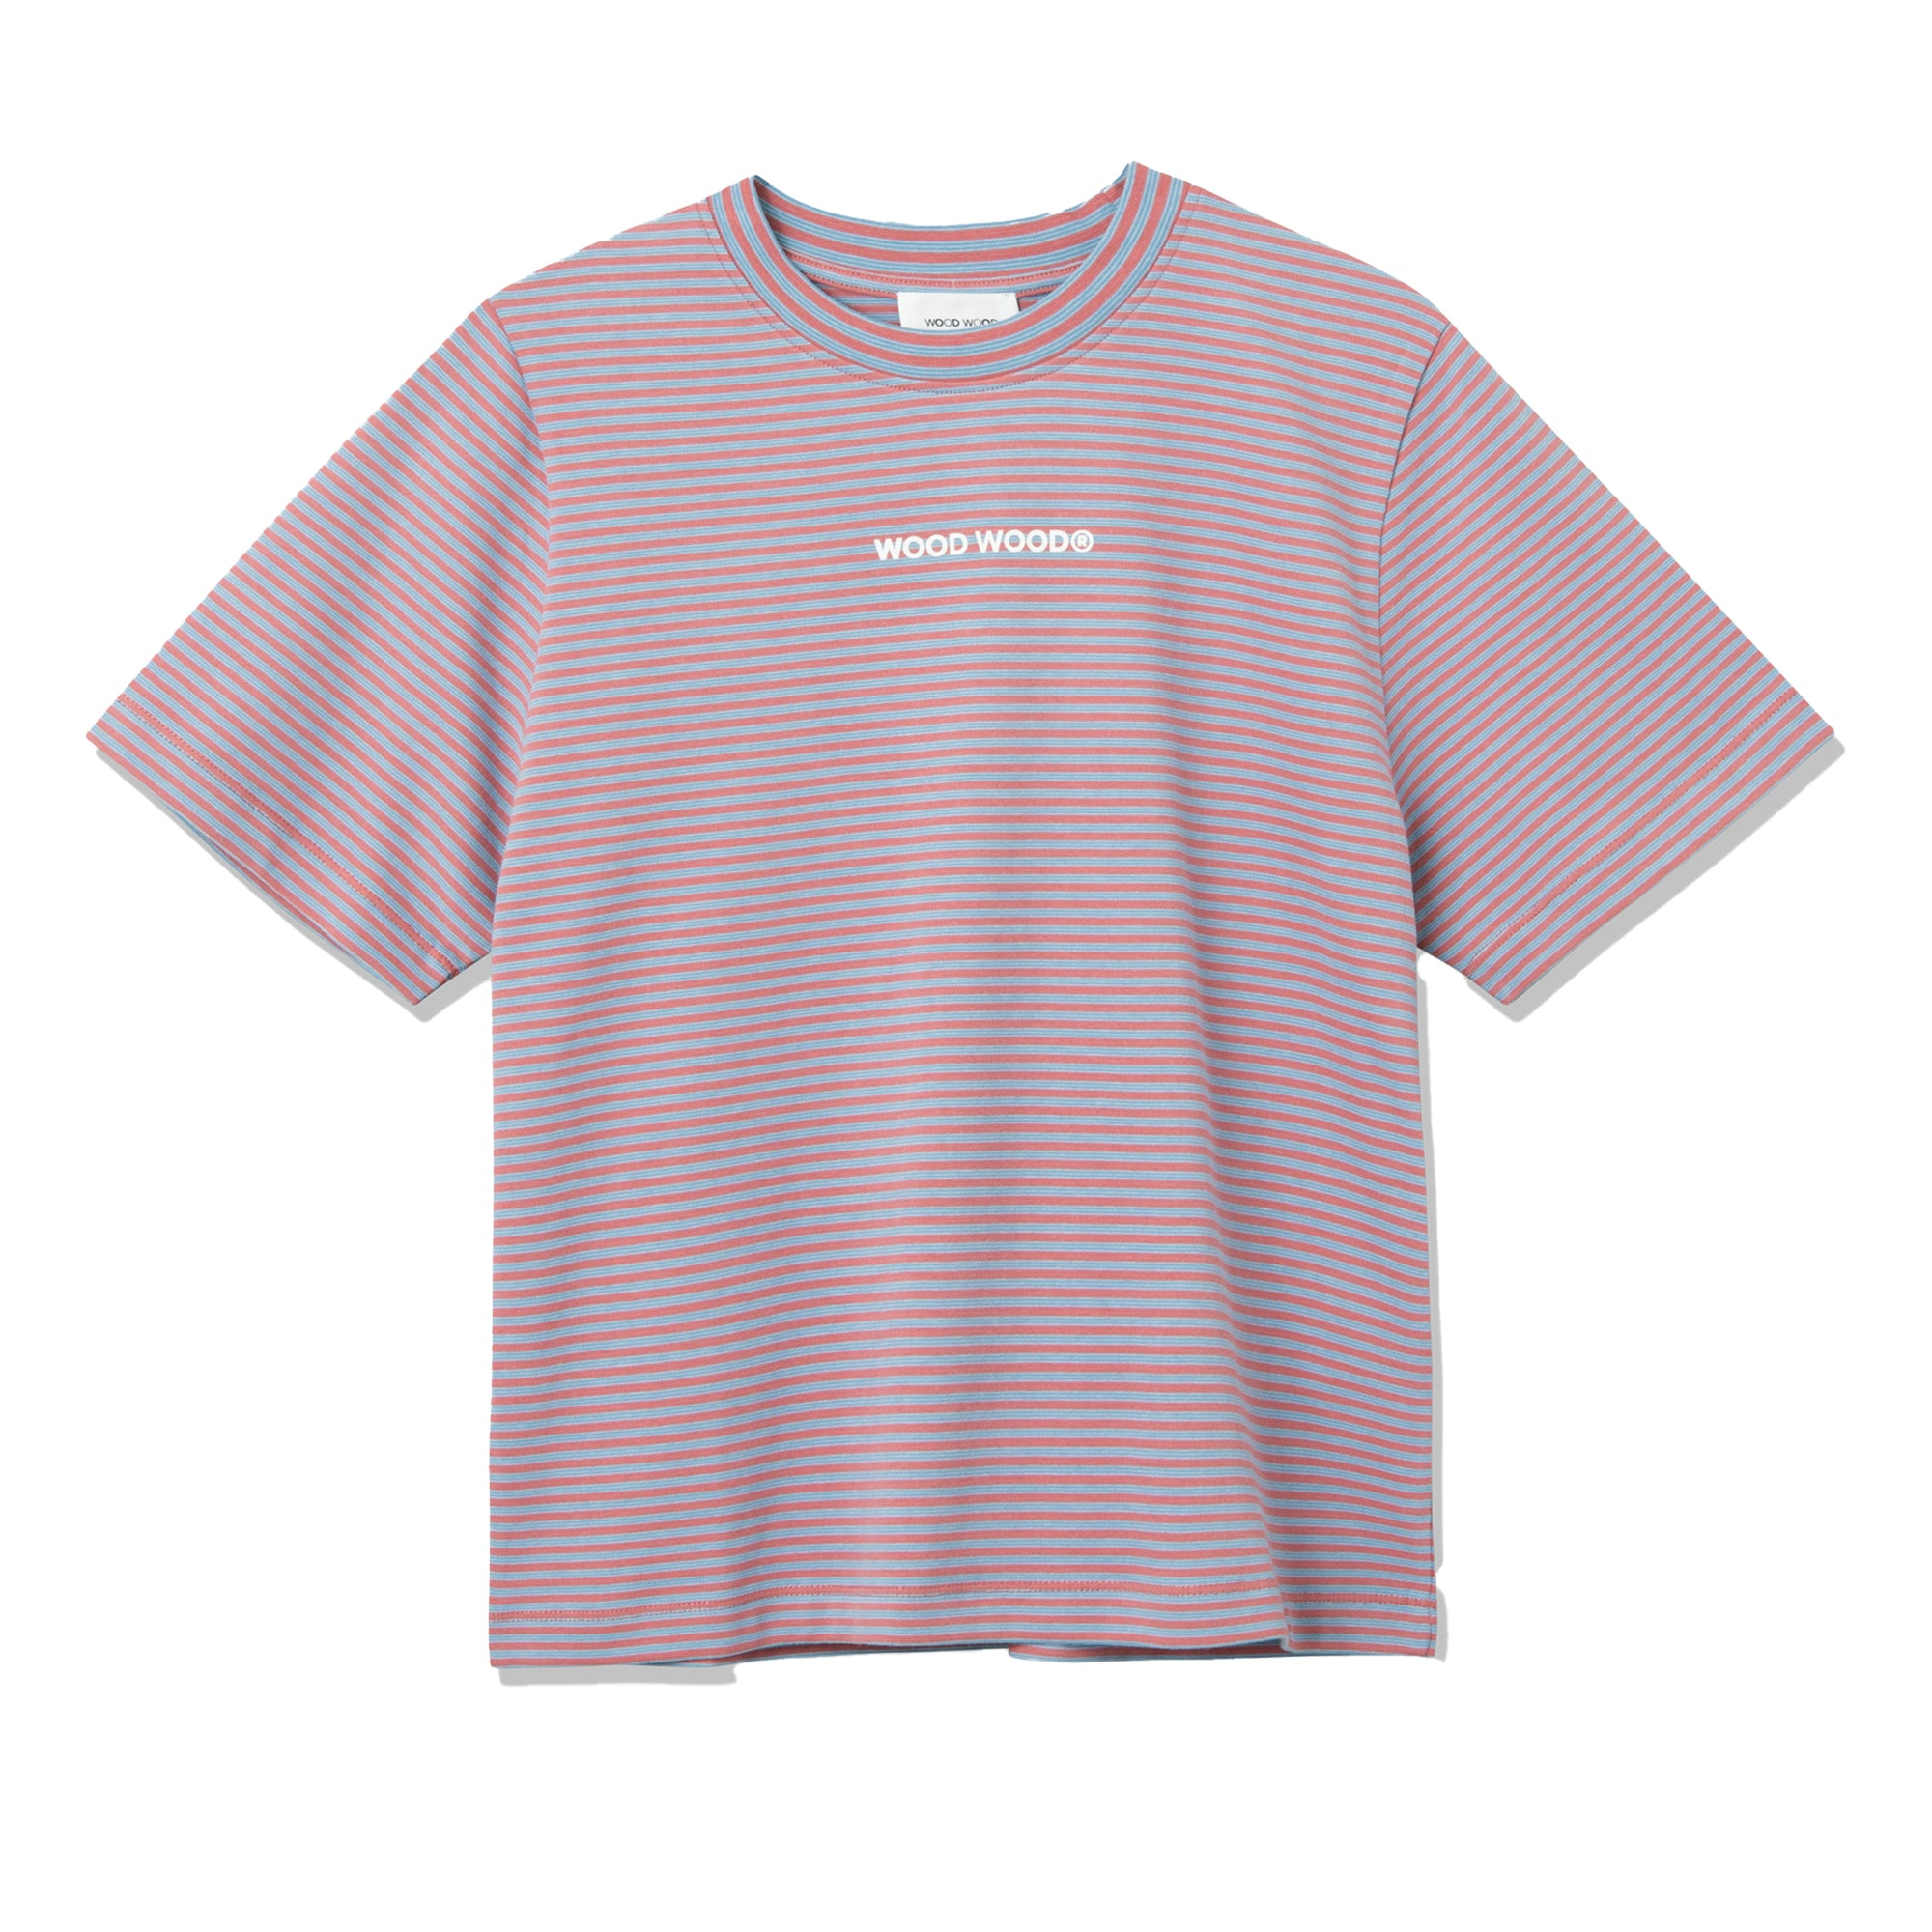 Wood Wood Womens Alma Heavy T-Shirt: Rose Stripes - The Union Project